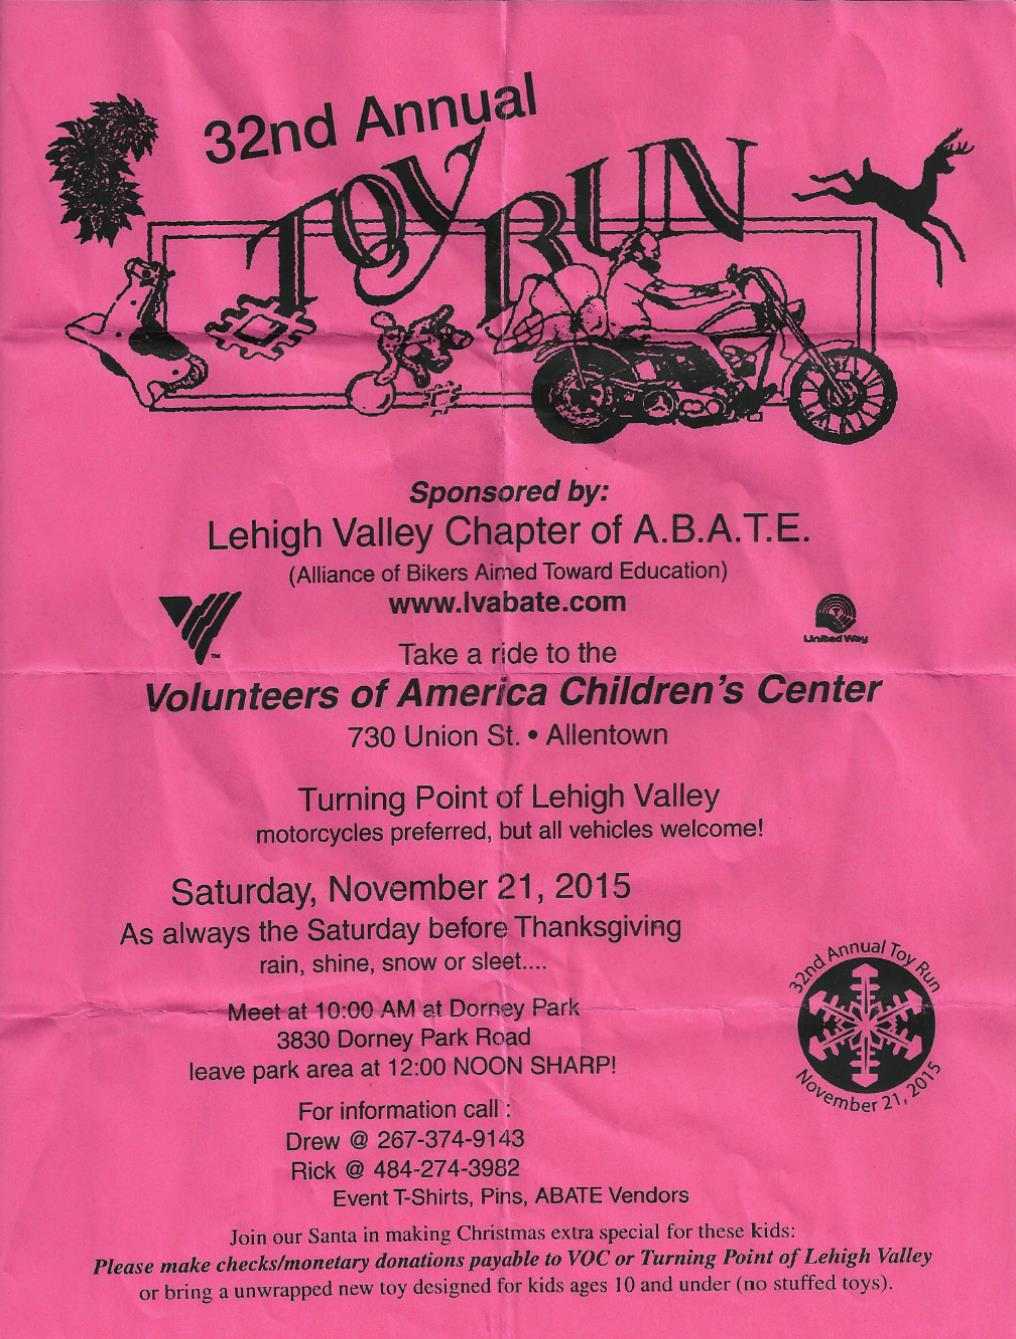 Speed dating events in the lehigh valley